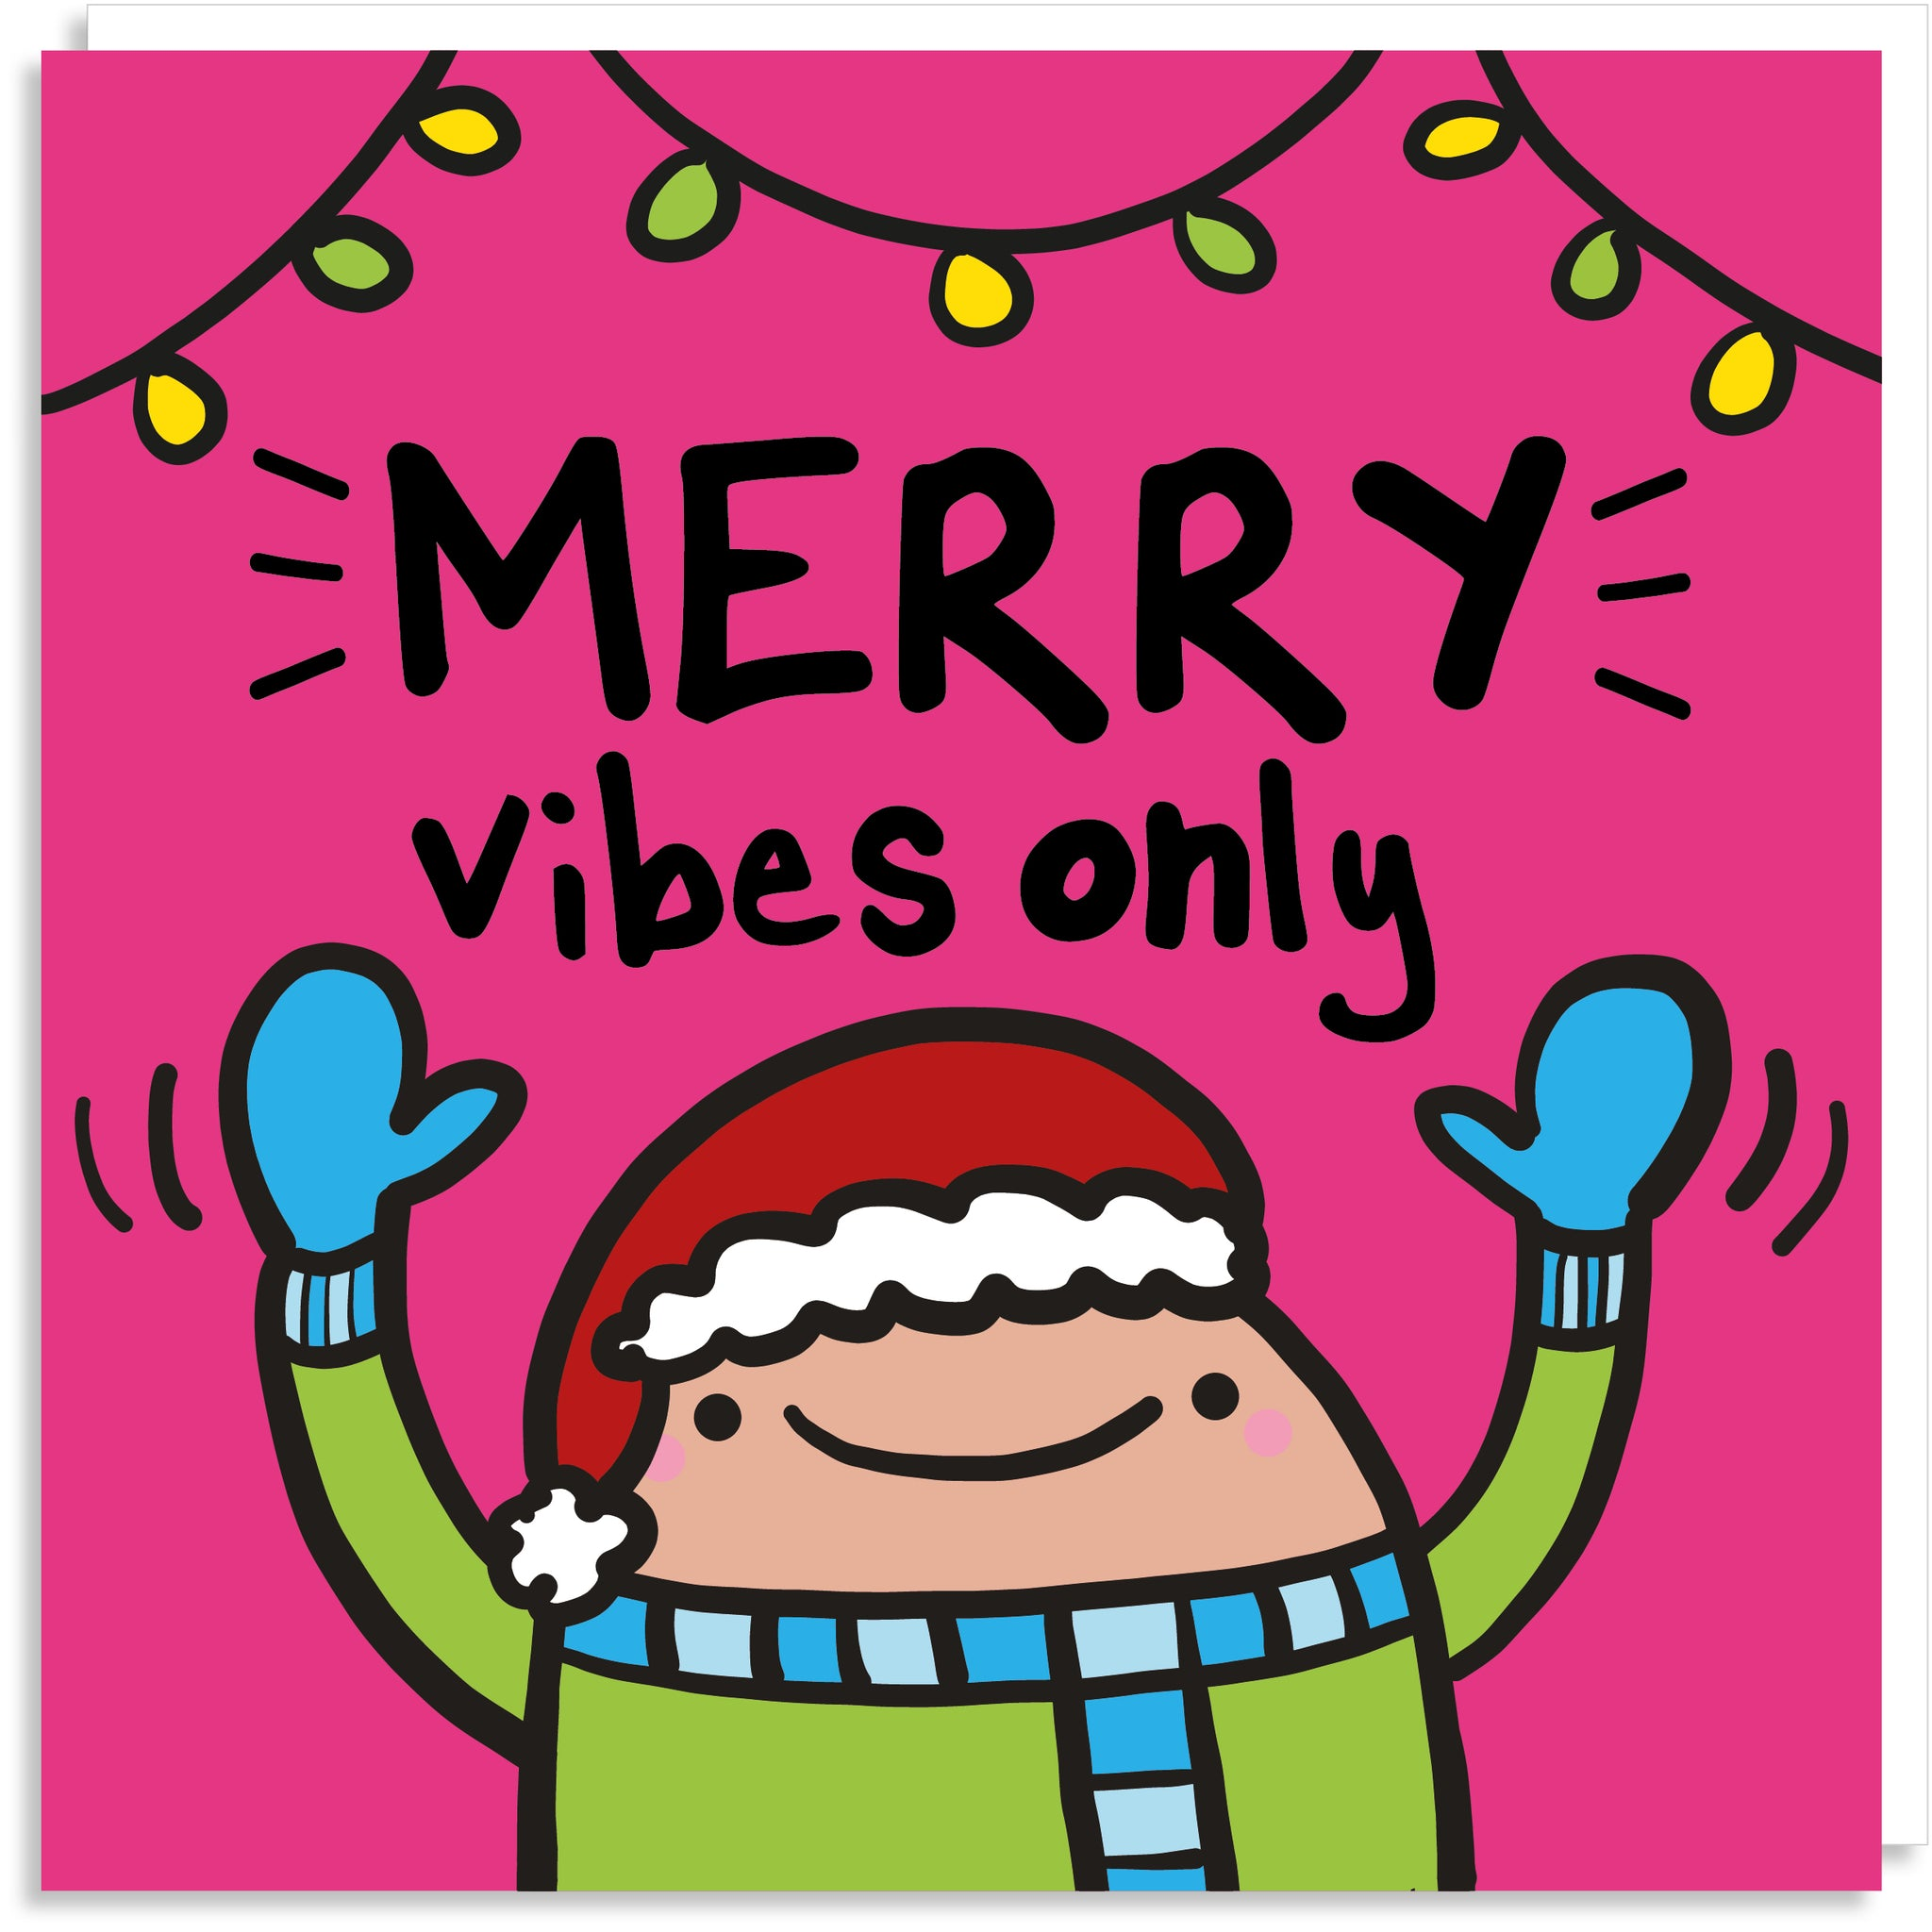 Merry vibes only Christmas card